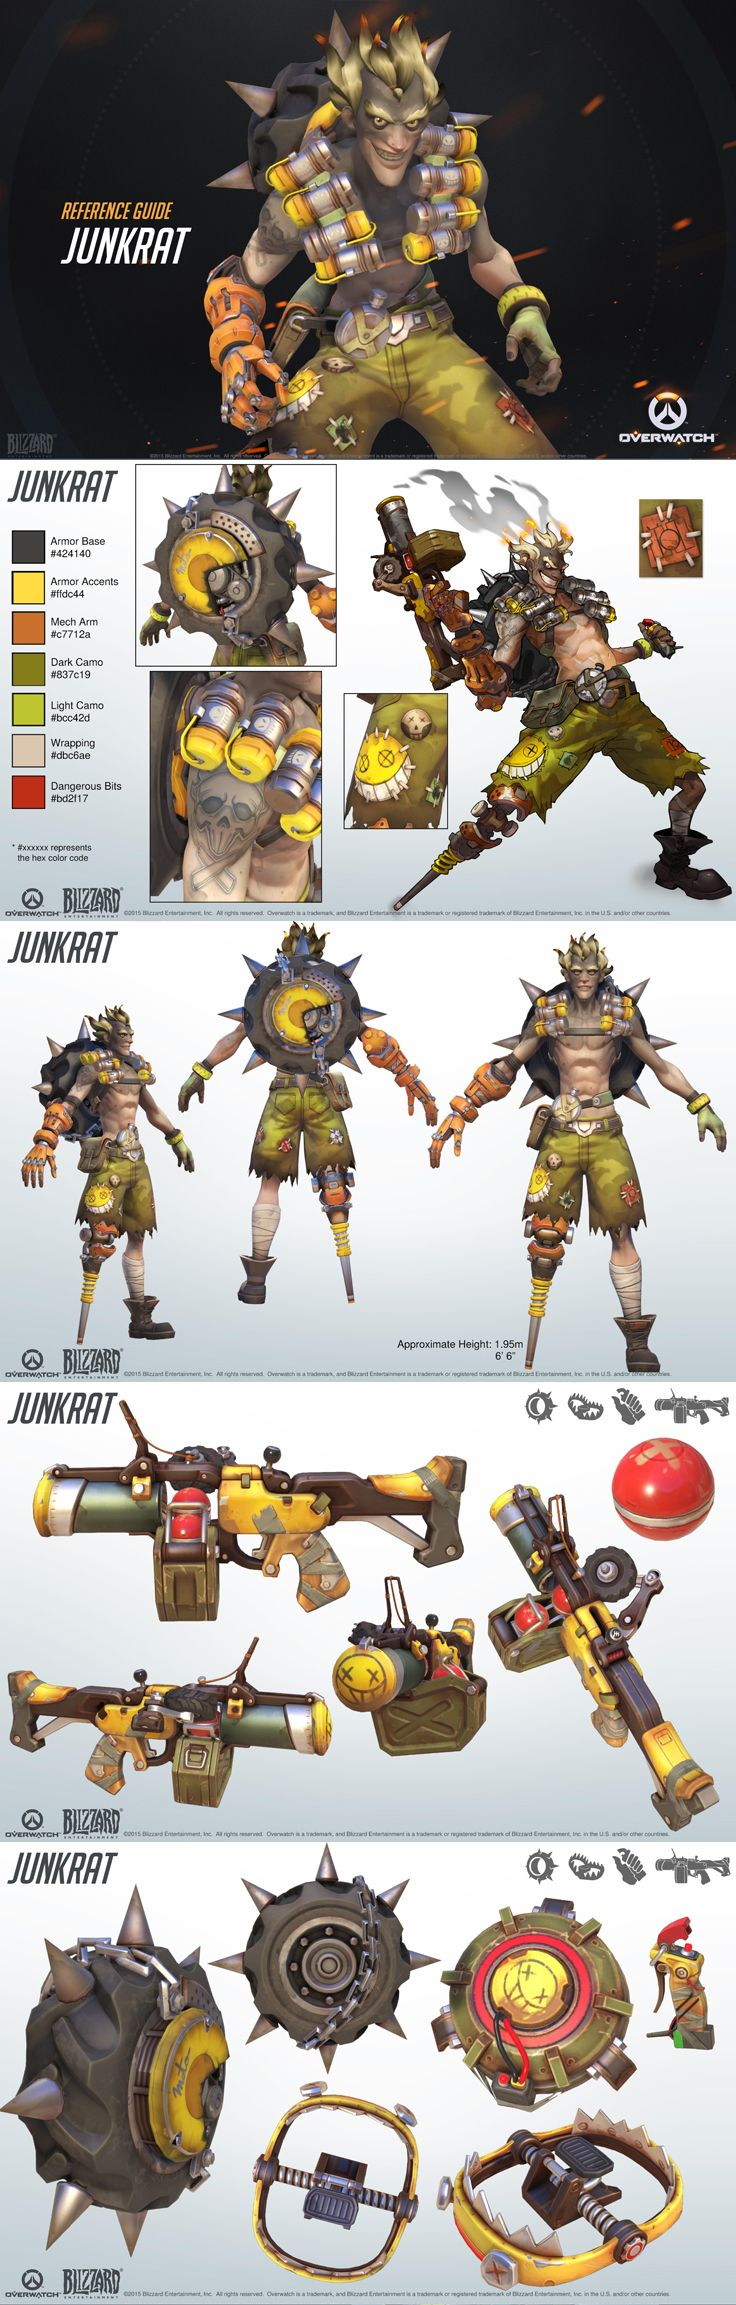 Overwatch Spotlight - Junkrat!  This crazy junker uses explosives to get the edge in battle. Then he'll rip you apart with his tire explosive.